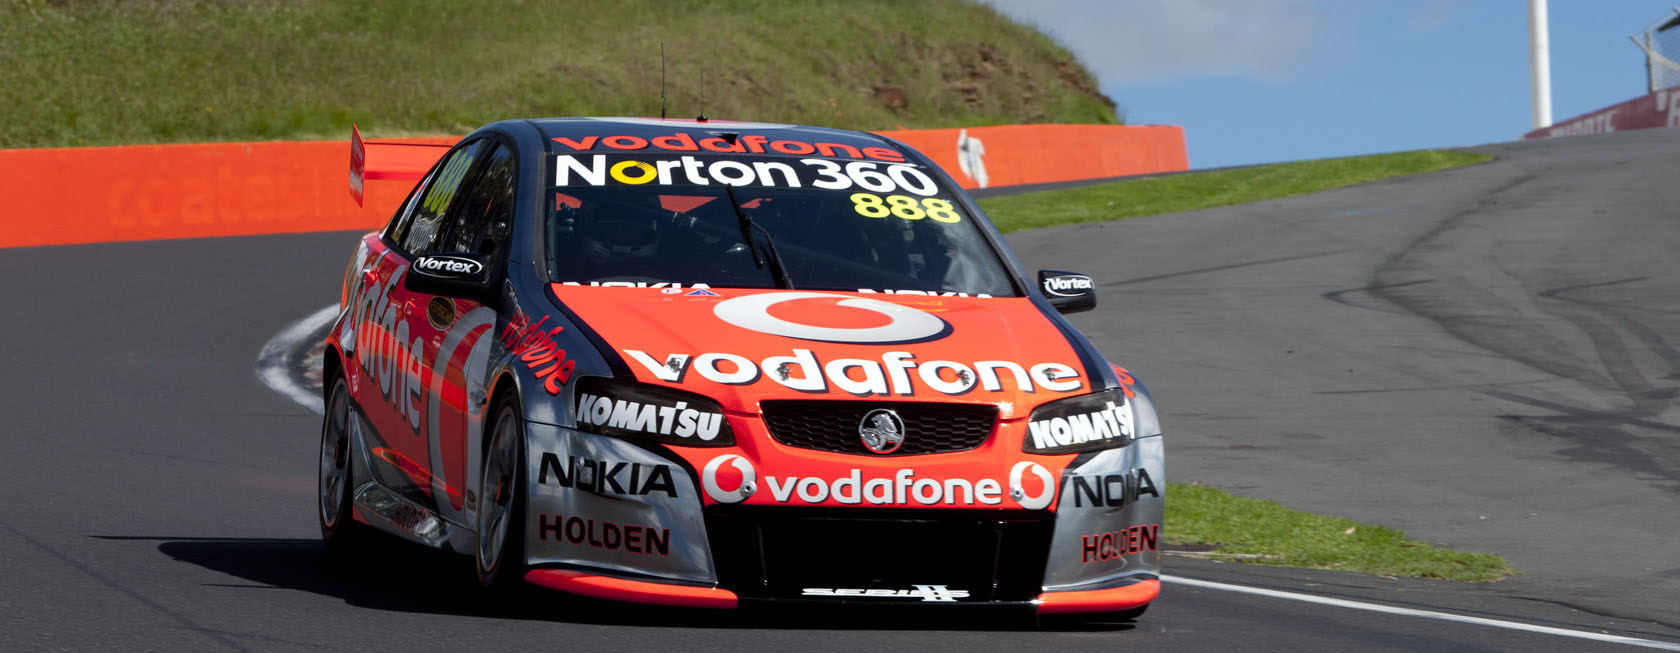 VODAFONE FORMULA ONE V8 SUPERCARS BATHURST